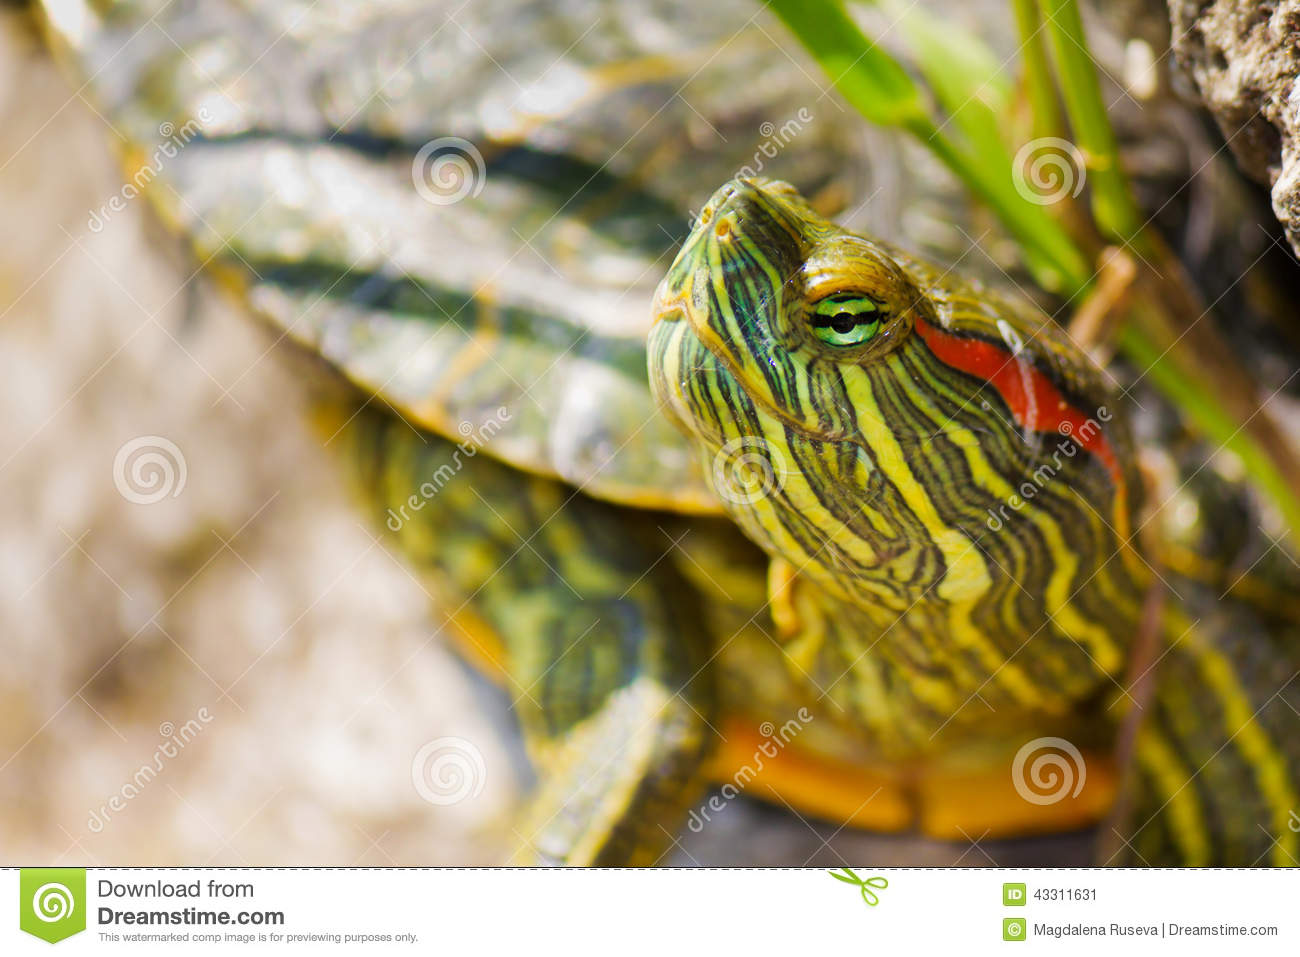 ... turtles are omnivorous, consuming a wide variety of aquatic animals